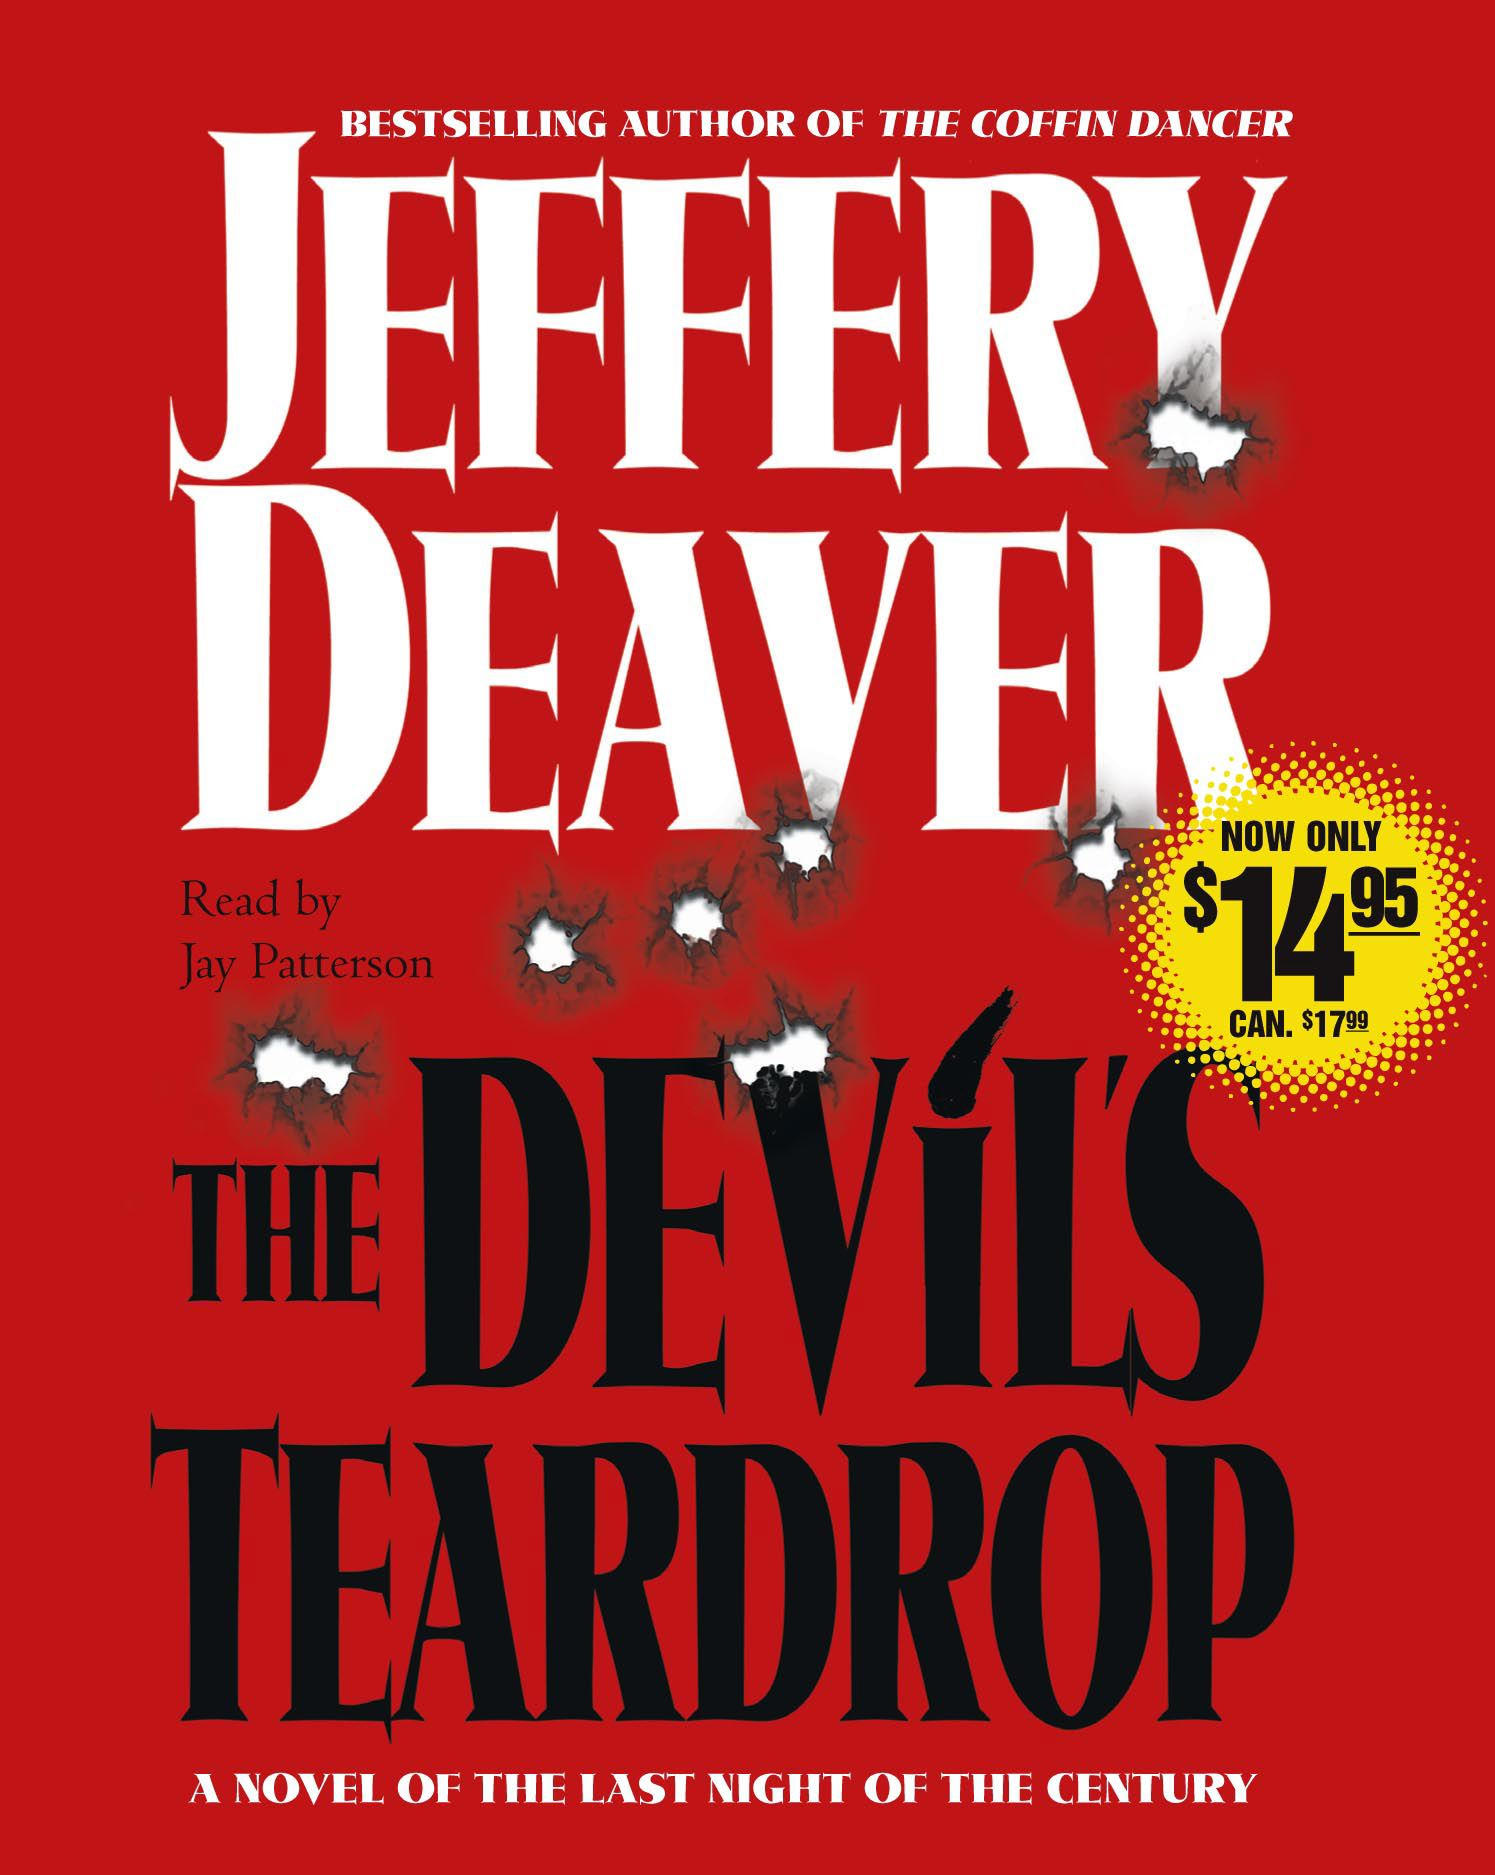 the theme of striving for perfection in the bone collector and the devils teardrop by jeffery deaver Lucinda williams: down where the spirit meets the bone (thirty tigers) 3lp the new album from lucinda williams, down where the spirit meets the bone produced by tom overby, greg leisz and lucinda williams, recorded and mixed by dave bianco, mastered by joe gastwirt.